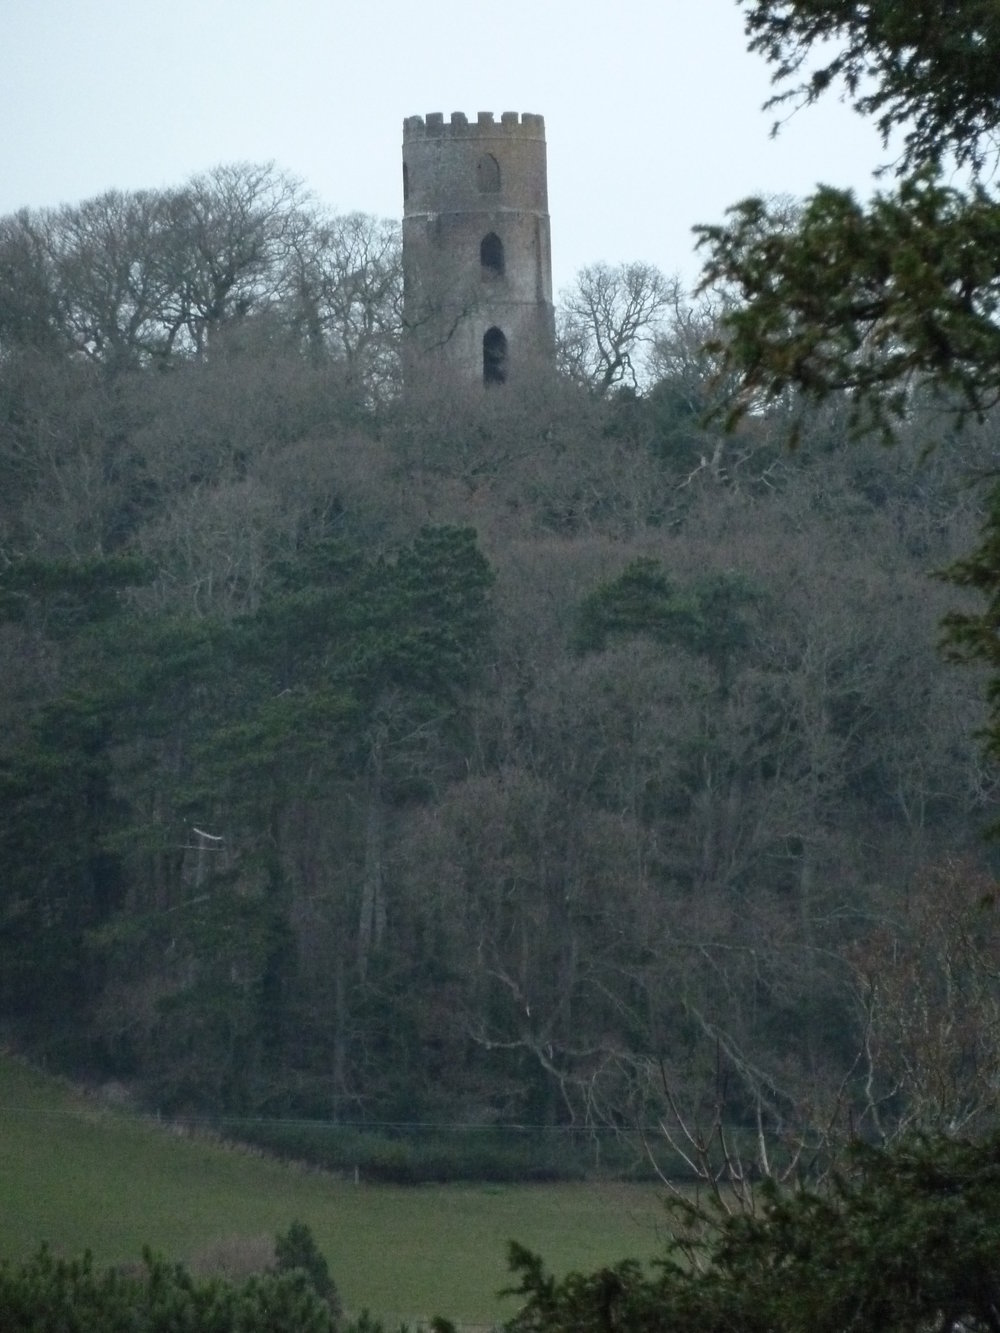 The folly on Conygar Hill rivals nearby Dunster Castle.